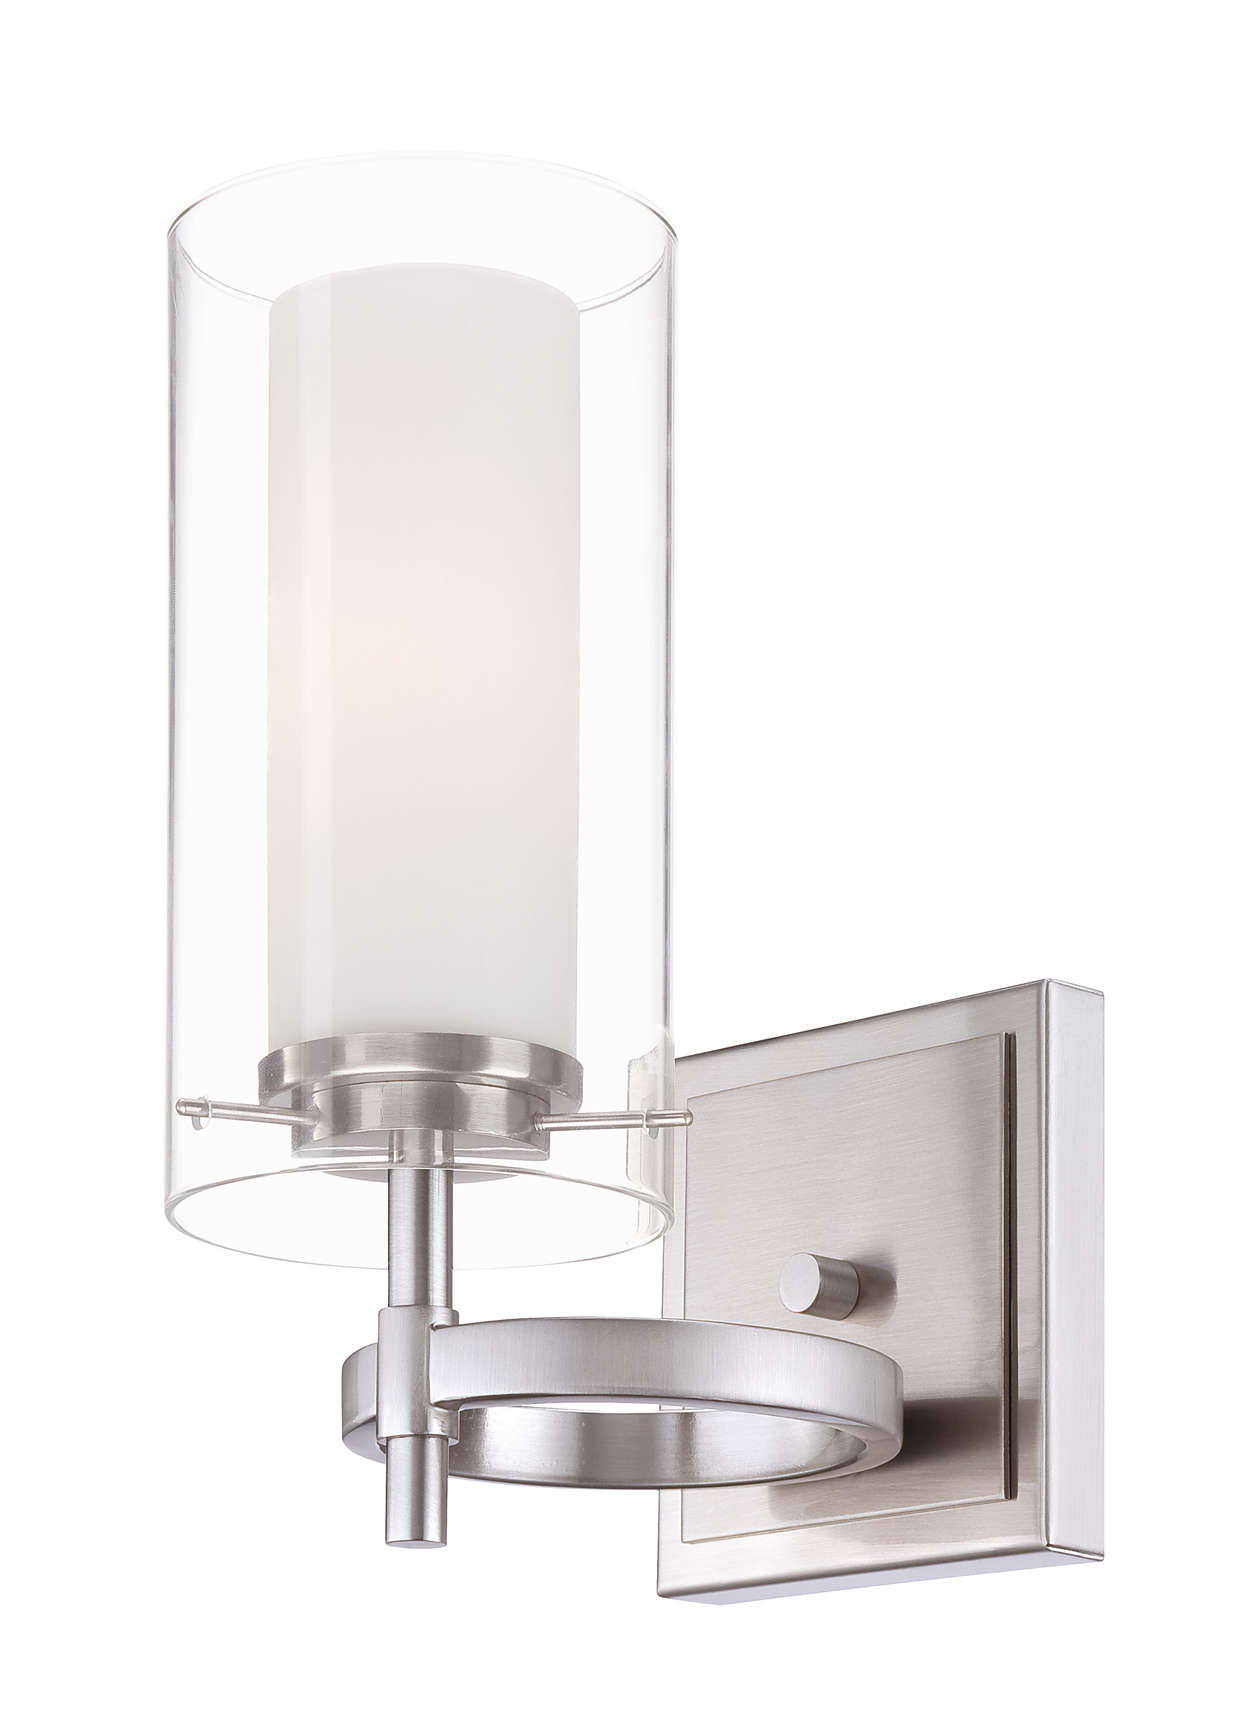 Hula 1-light wall sconce in Satin Nickel finish